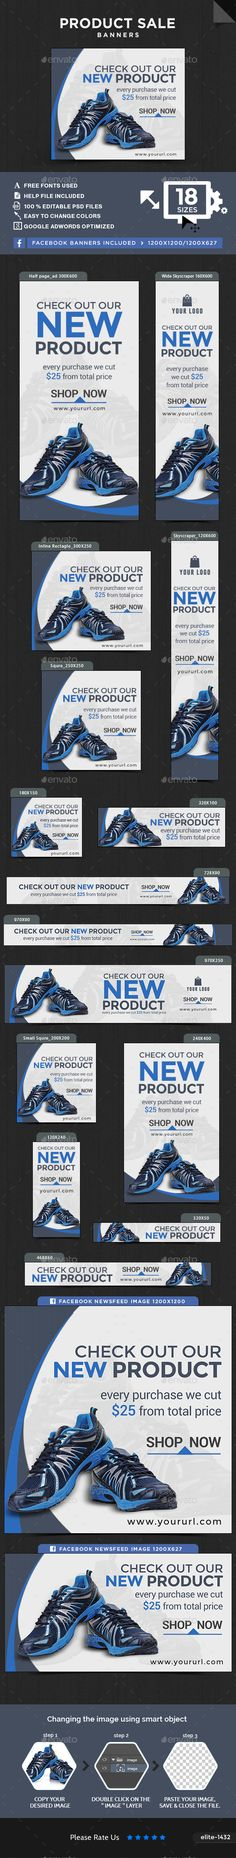 Product Sale Banners — Photoshop PSD #banner set #metro design • Available here → https://graphicriver.net/item/product-sale-banners/15930191?ref=pxcr